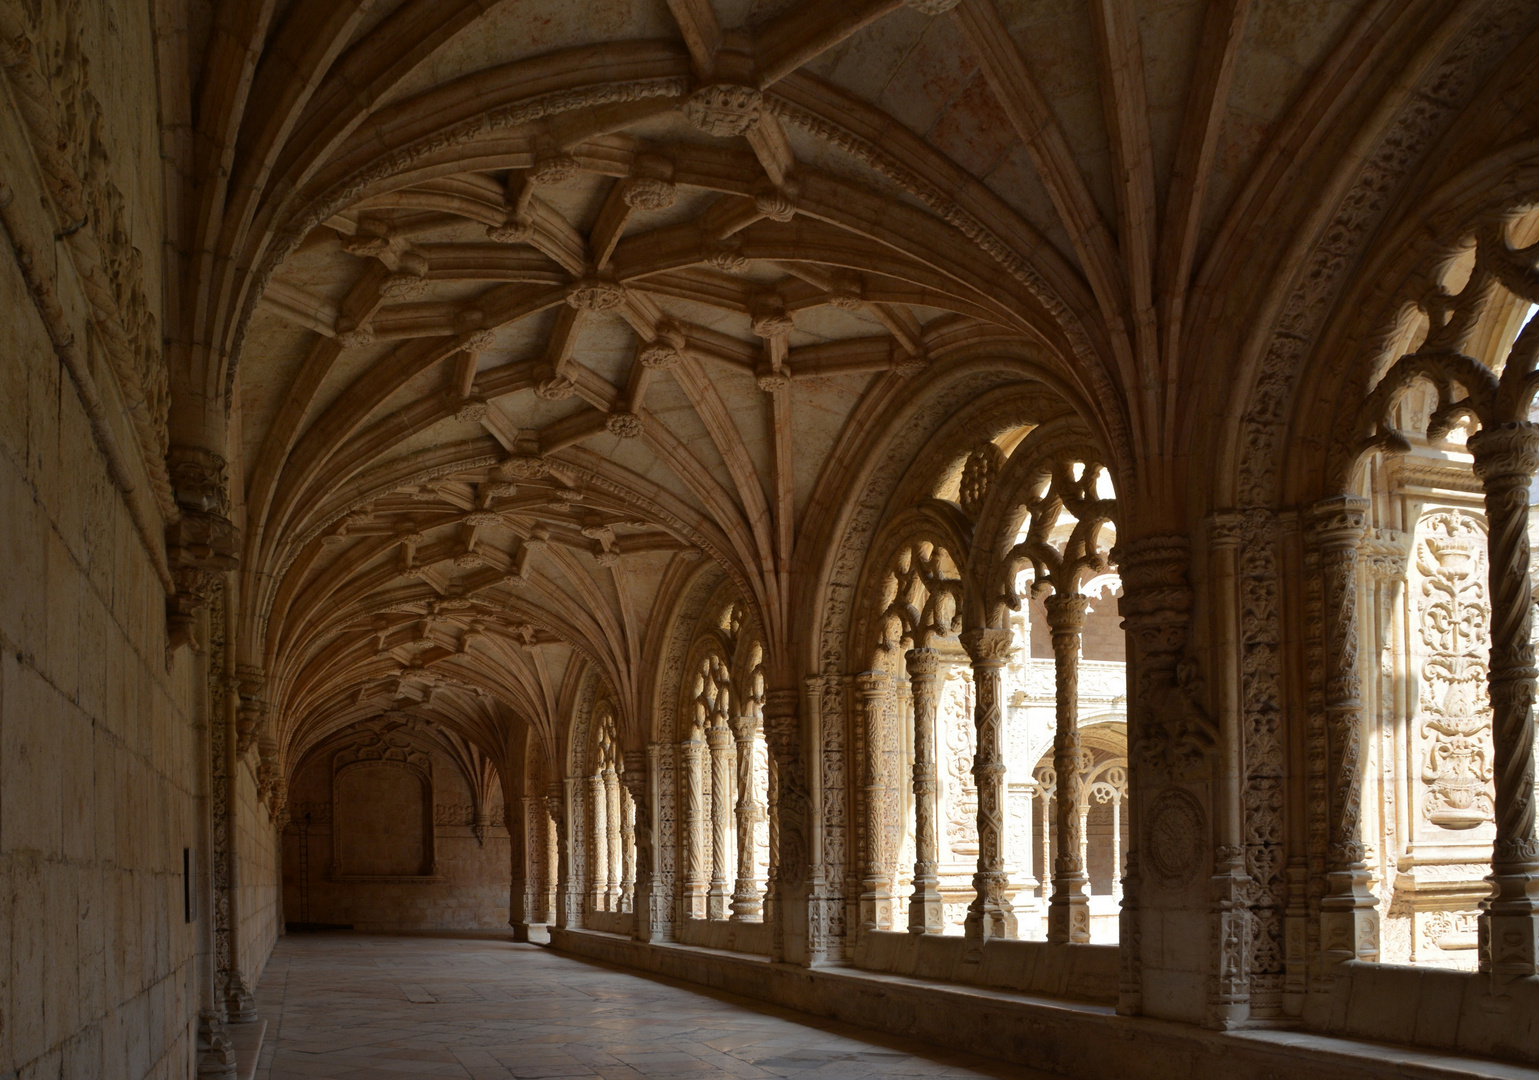 Portugal (Hieronymus - Kloster-2)